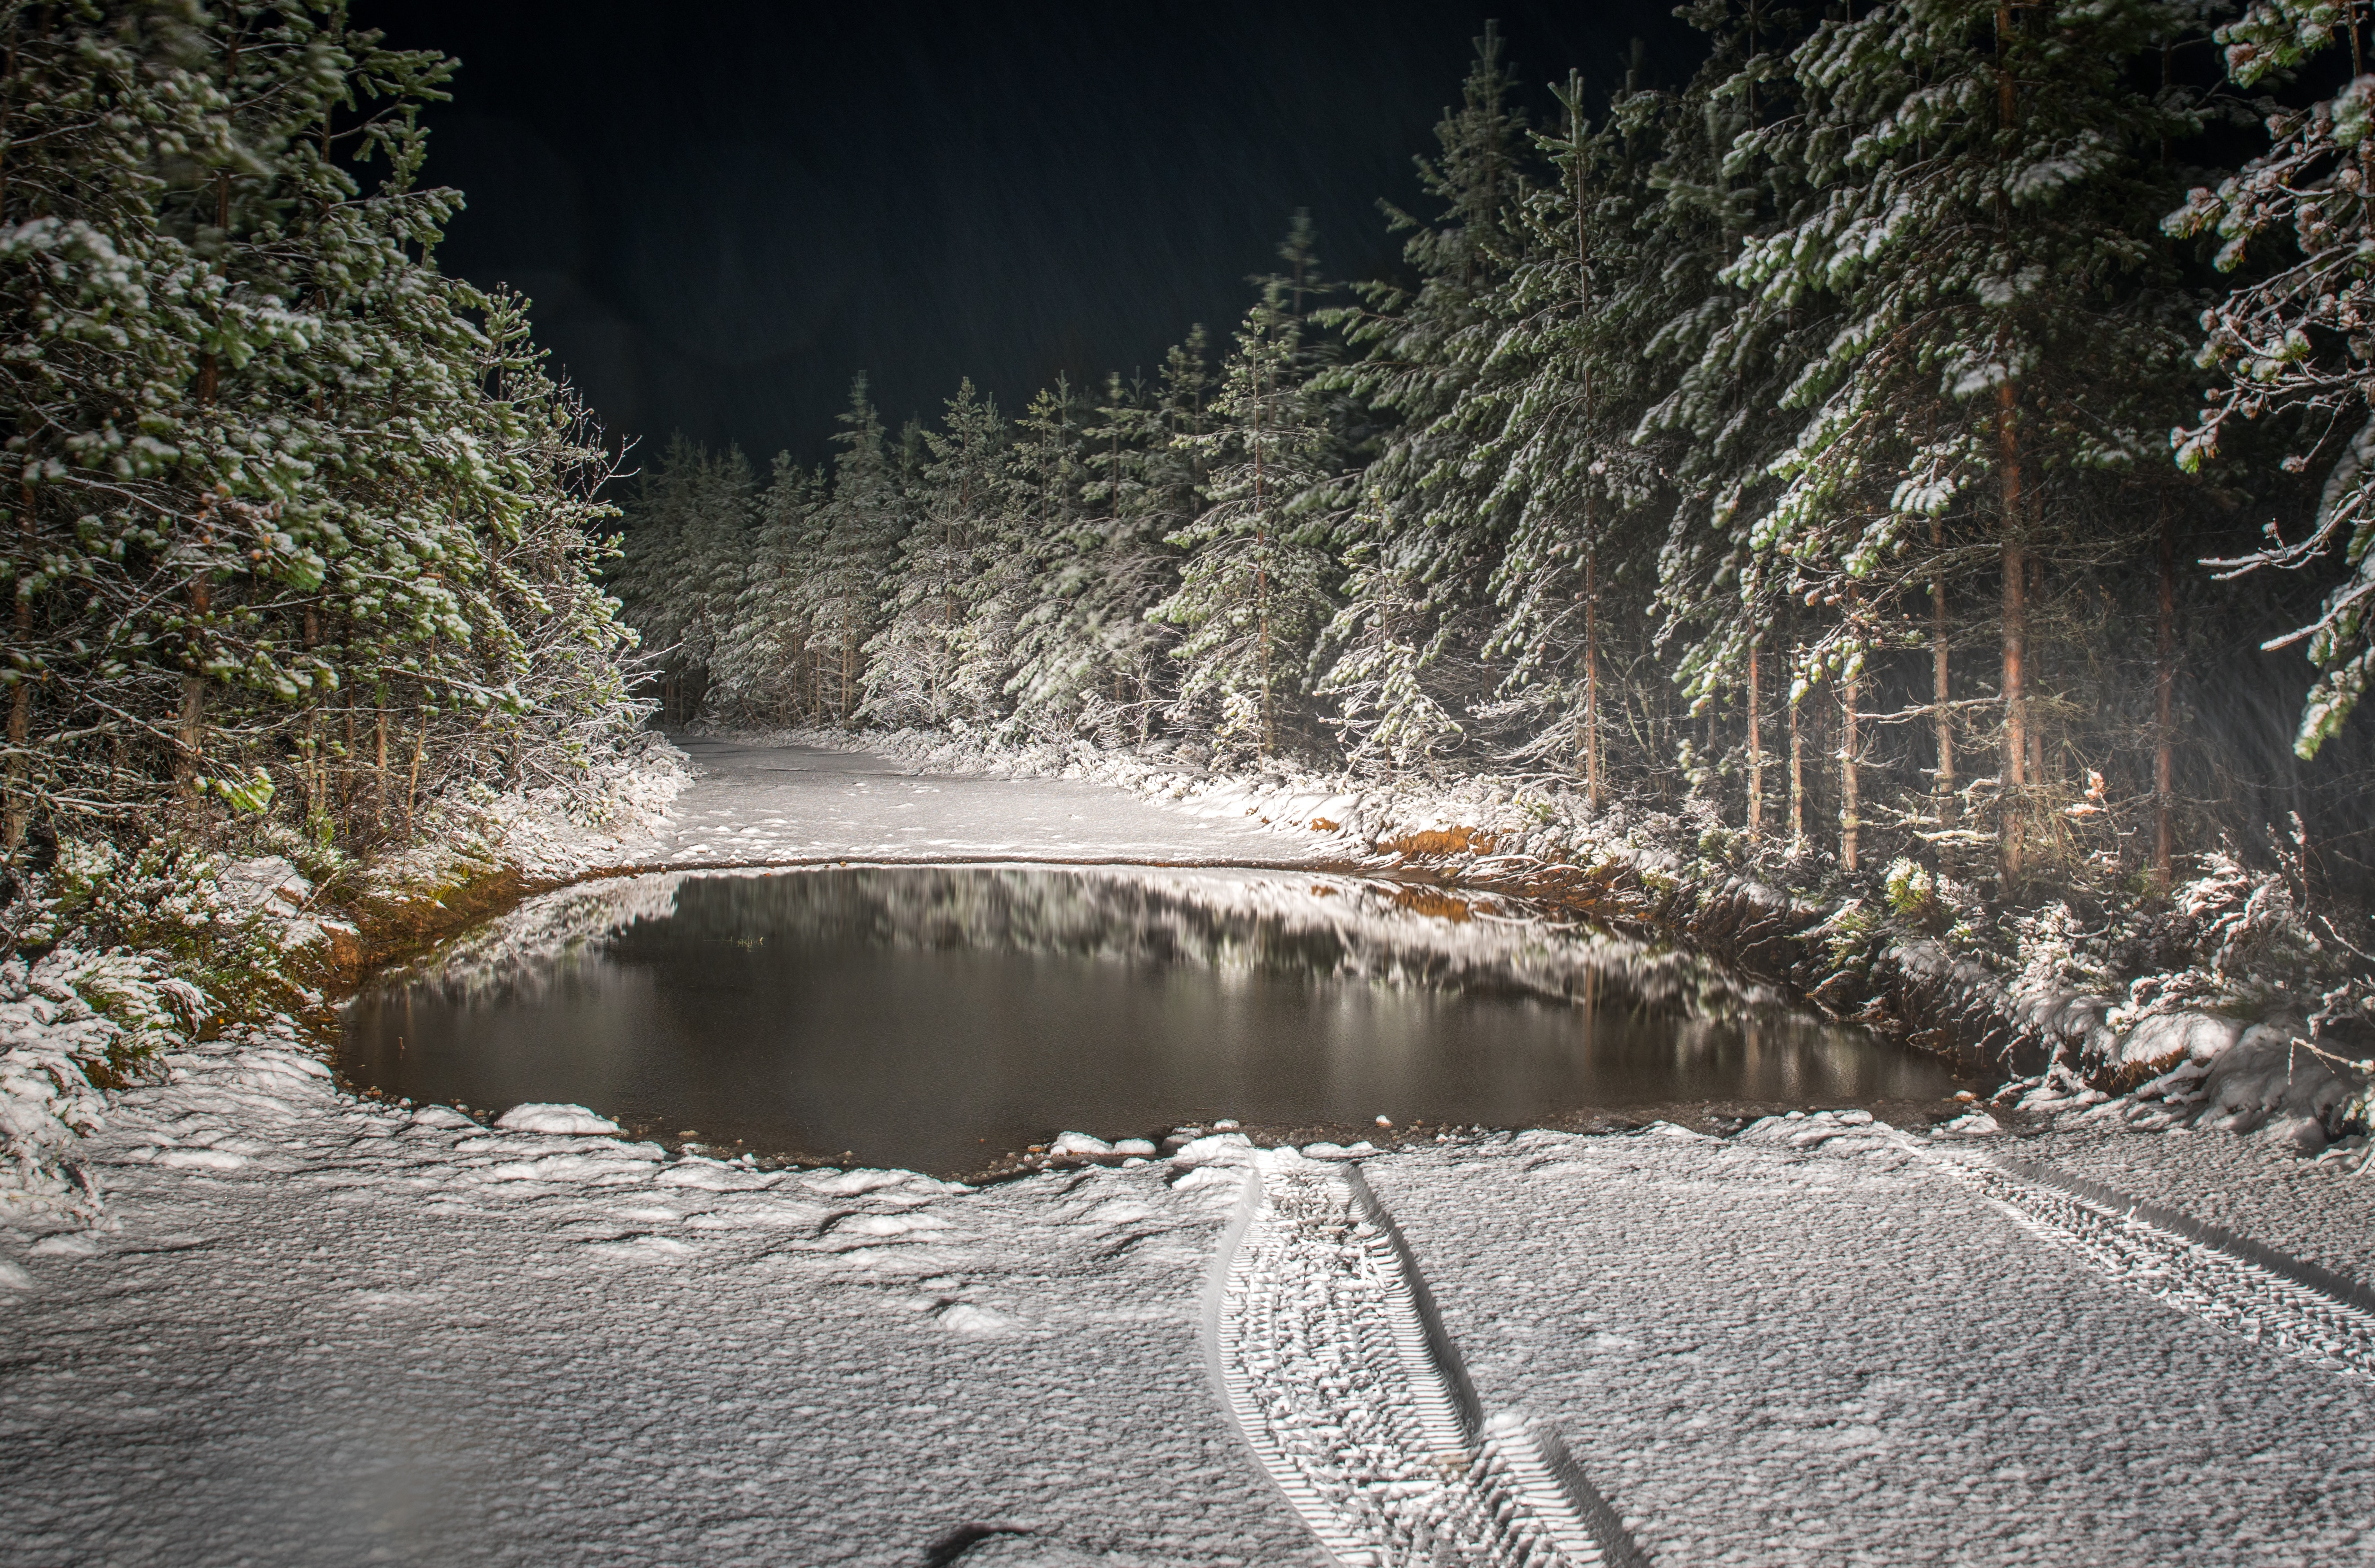 Roadway Filled by Snow Surrounded by Pine Trees Landscape Photography, Reflection, Wood, Winter, Water, HQ Photo